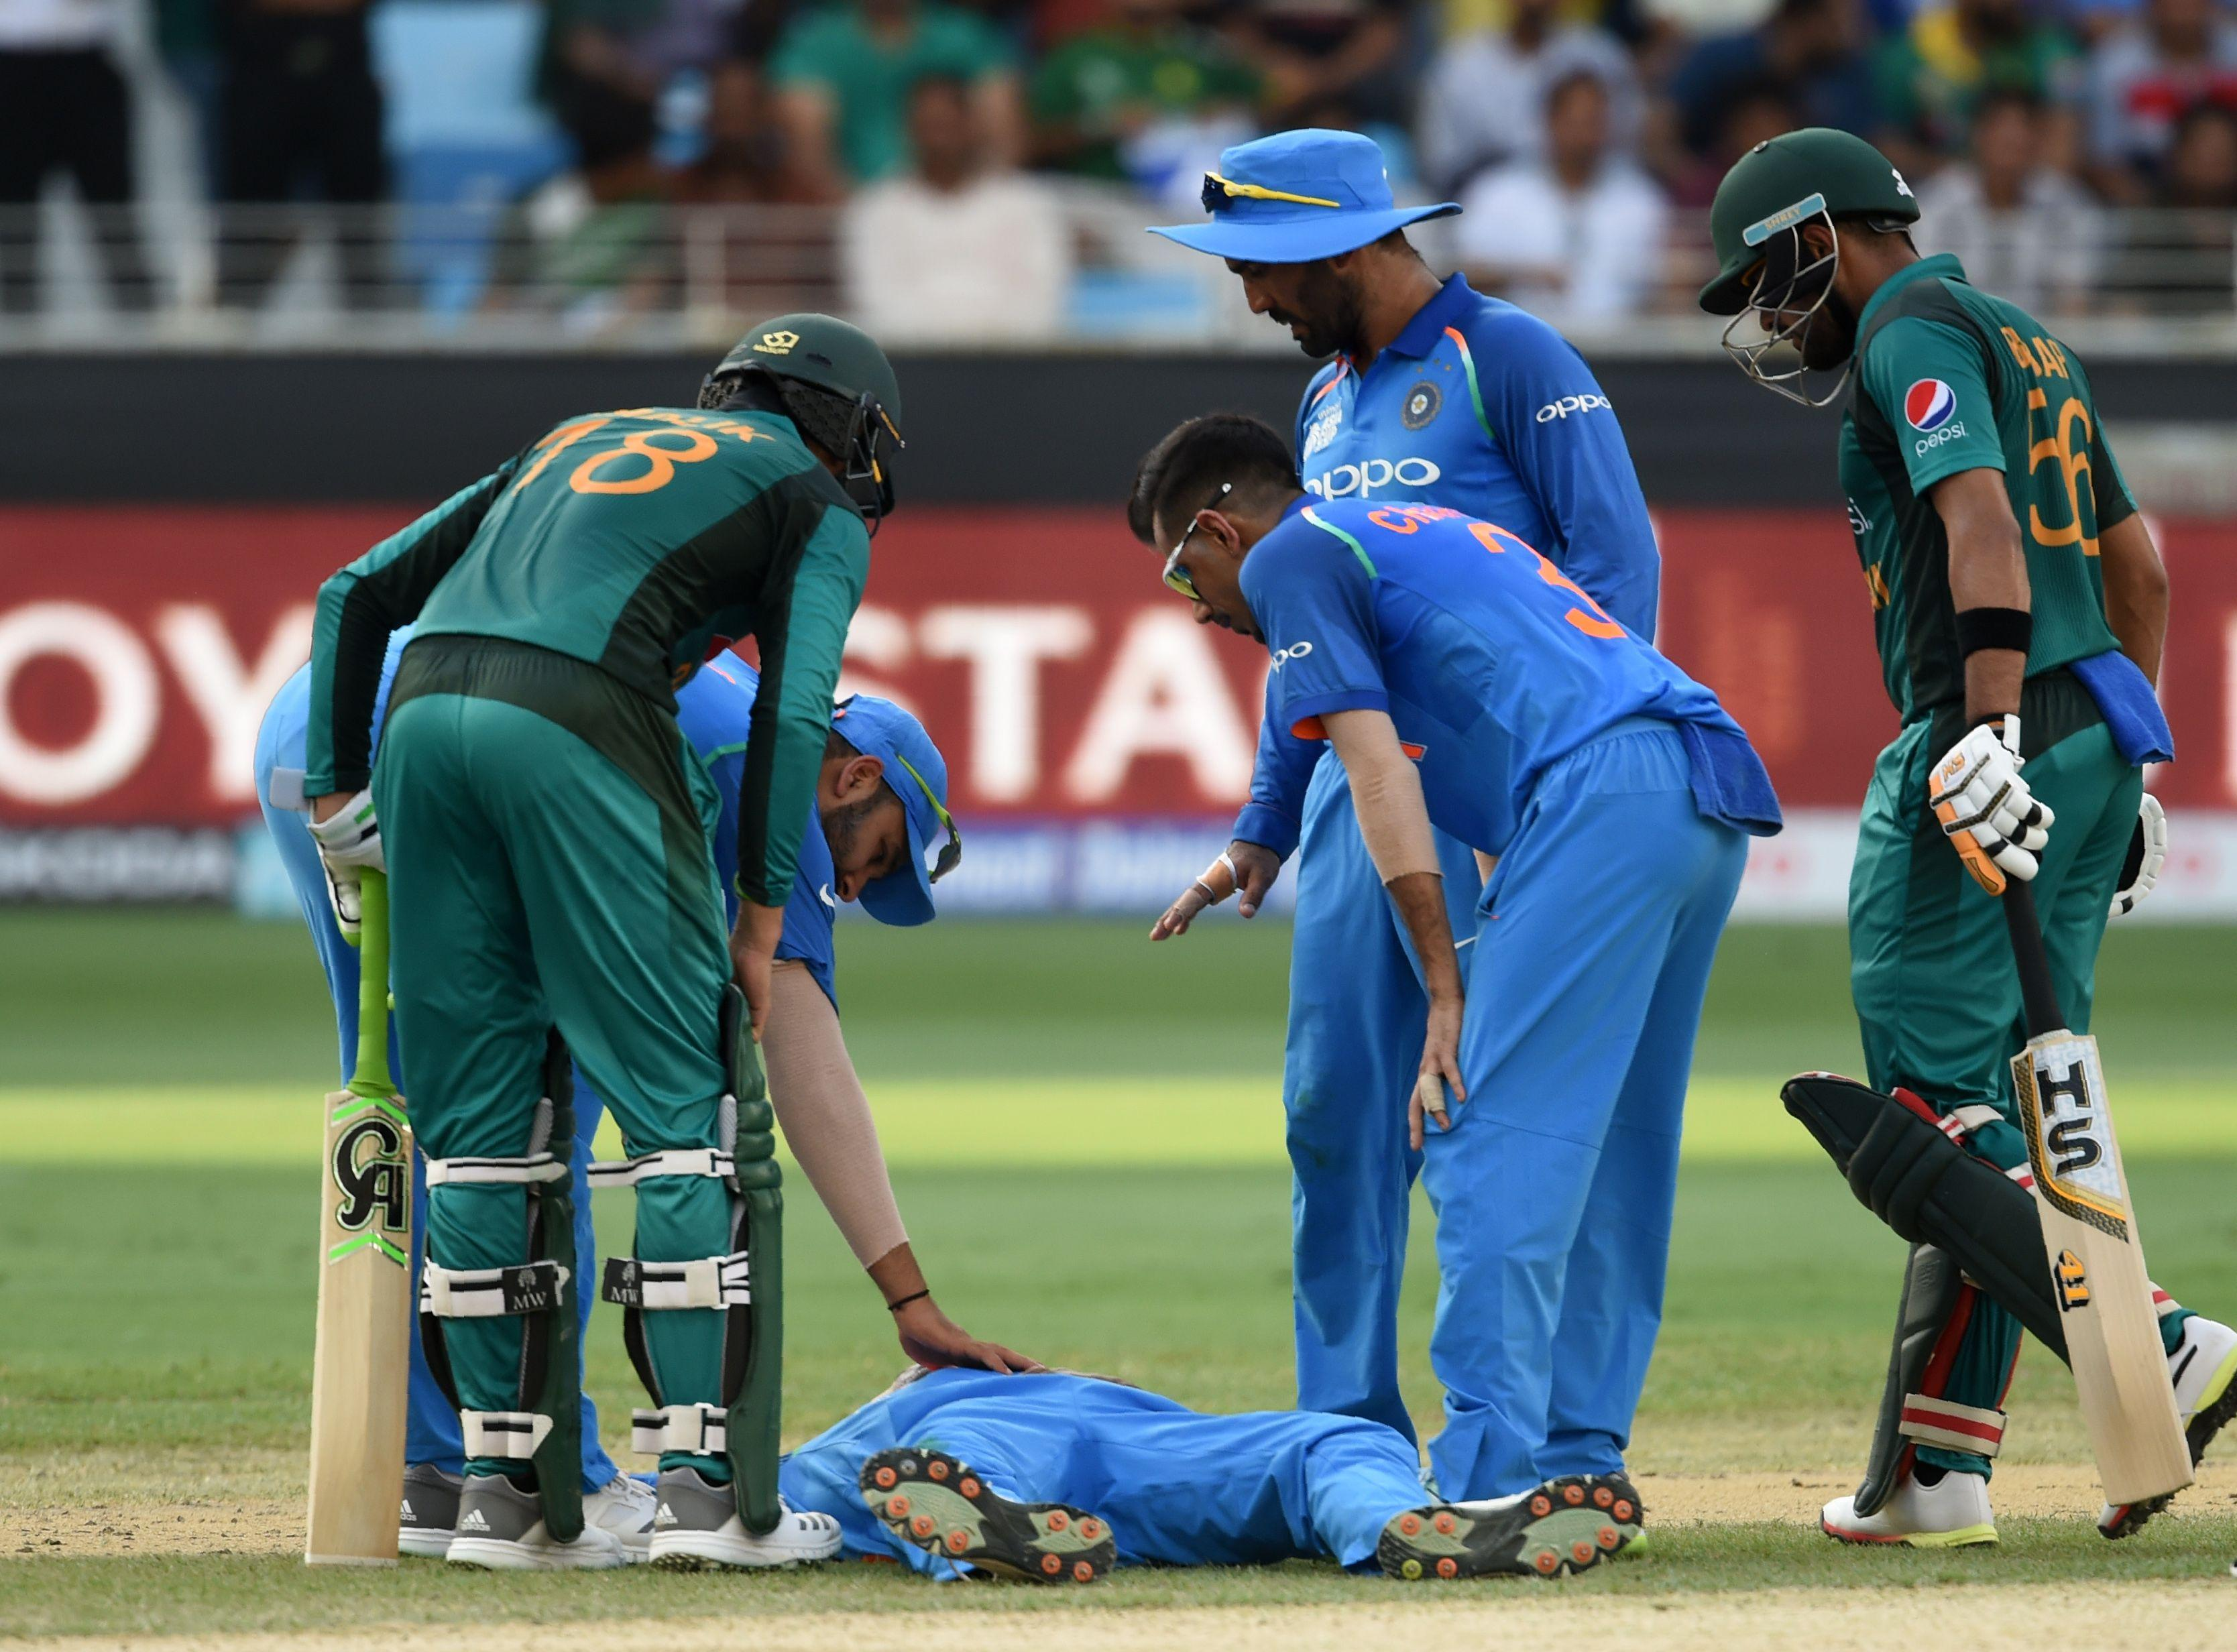 Pandya fell to the ground during the 18th over in India's match in the Asia Cup